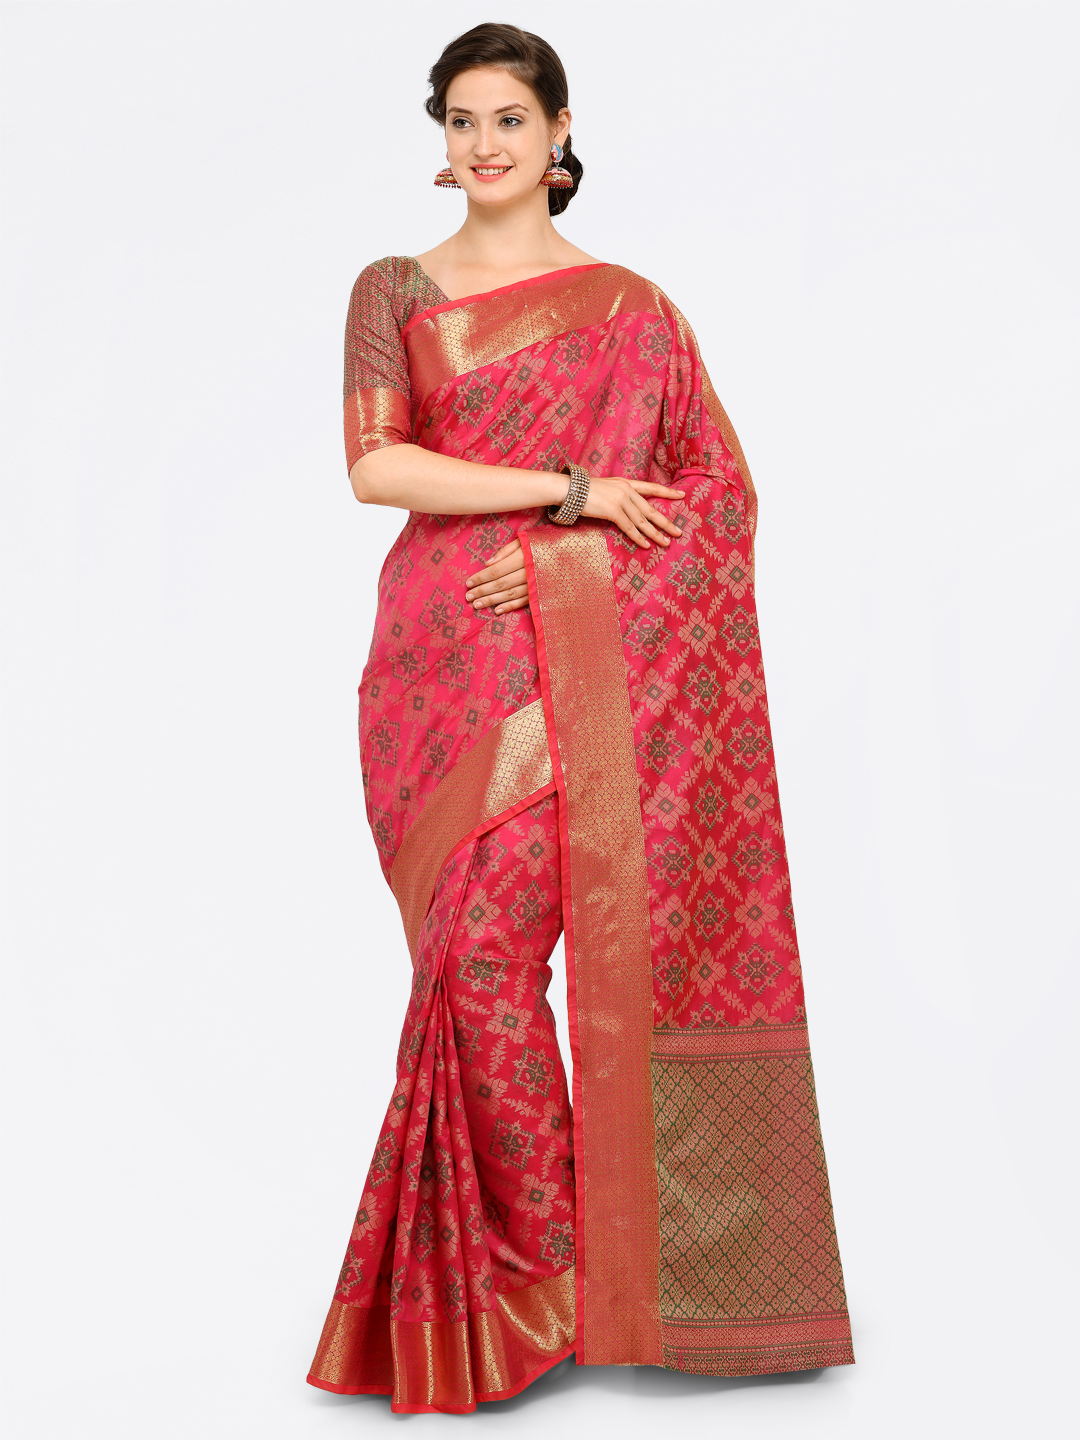 Saree mall Pink Silk Blend Printed Kanjeevaram Saree Price in India